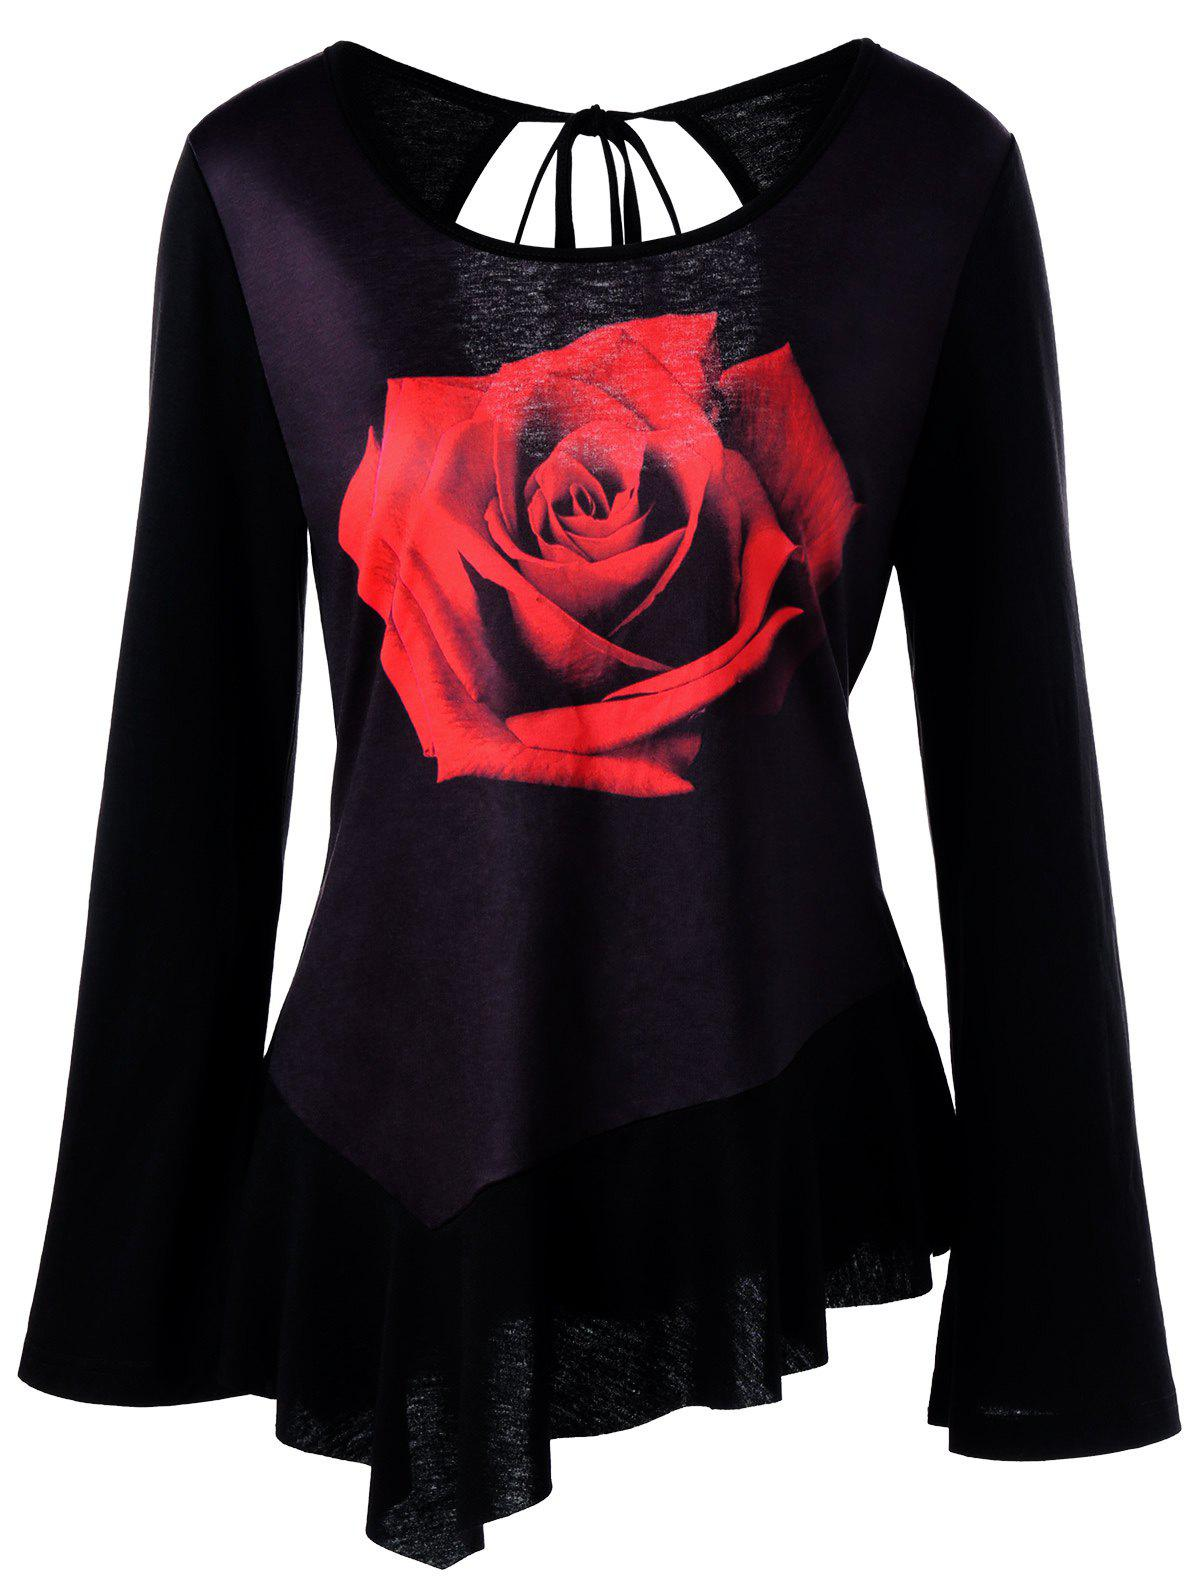 3D Rose Print Cut Out Bell Sleeve T-shirtWOMEN<br><br>Size: XL; Color: BLACK; Material: Polyester,Spandex; Shirt Length: Regular; Sleeve Length: Full; Collar: Round Neck; Style: Fashion; Pattern Type: Floral; Season: Fall,Spring; Weight: 0.2500kg; Package Contents: 1 x T-shirt;